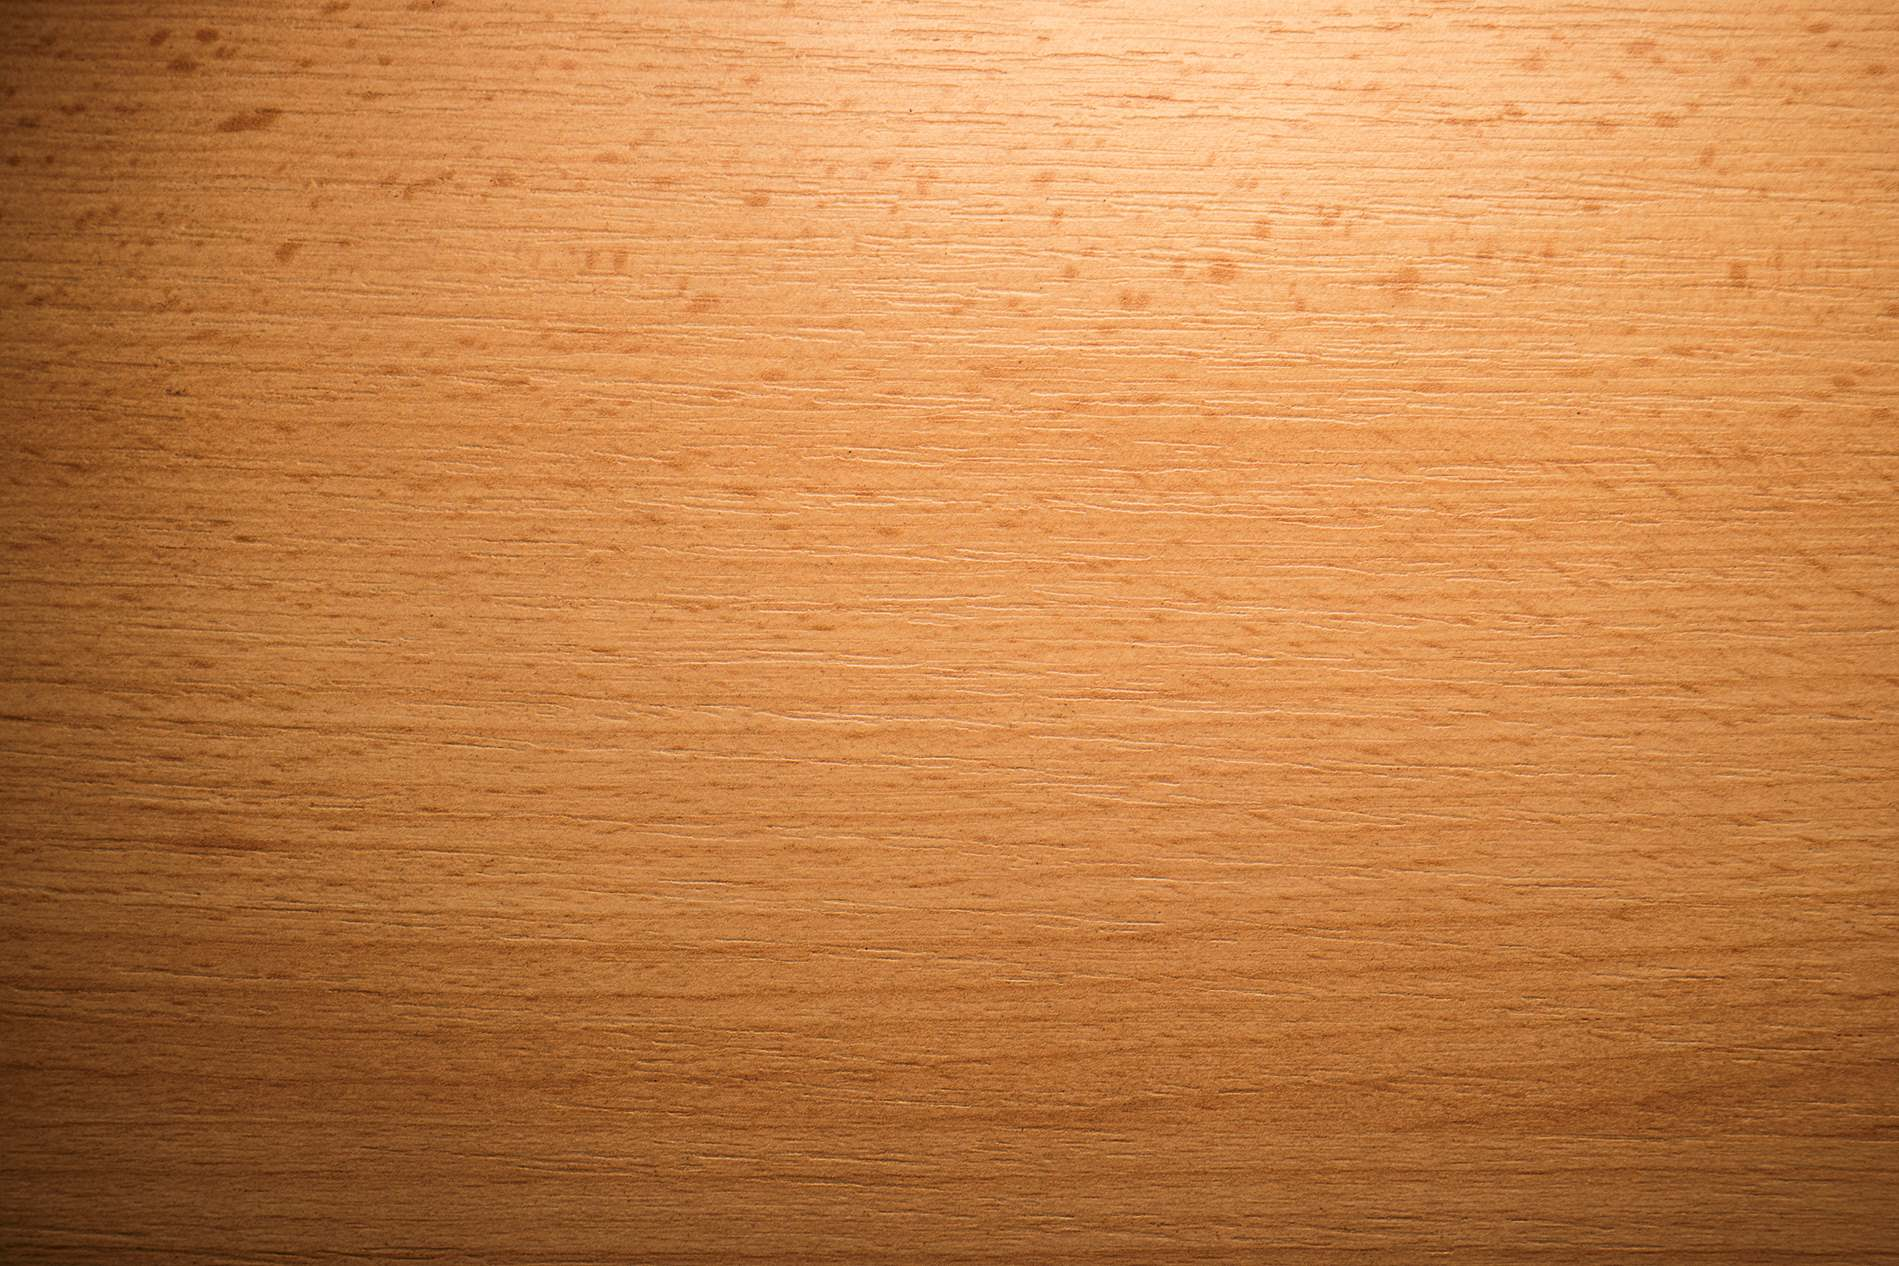 Wooden table background pattern - Yellow Wood Table Background